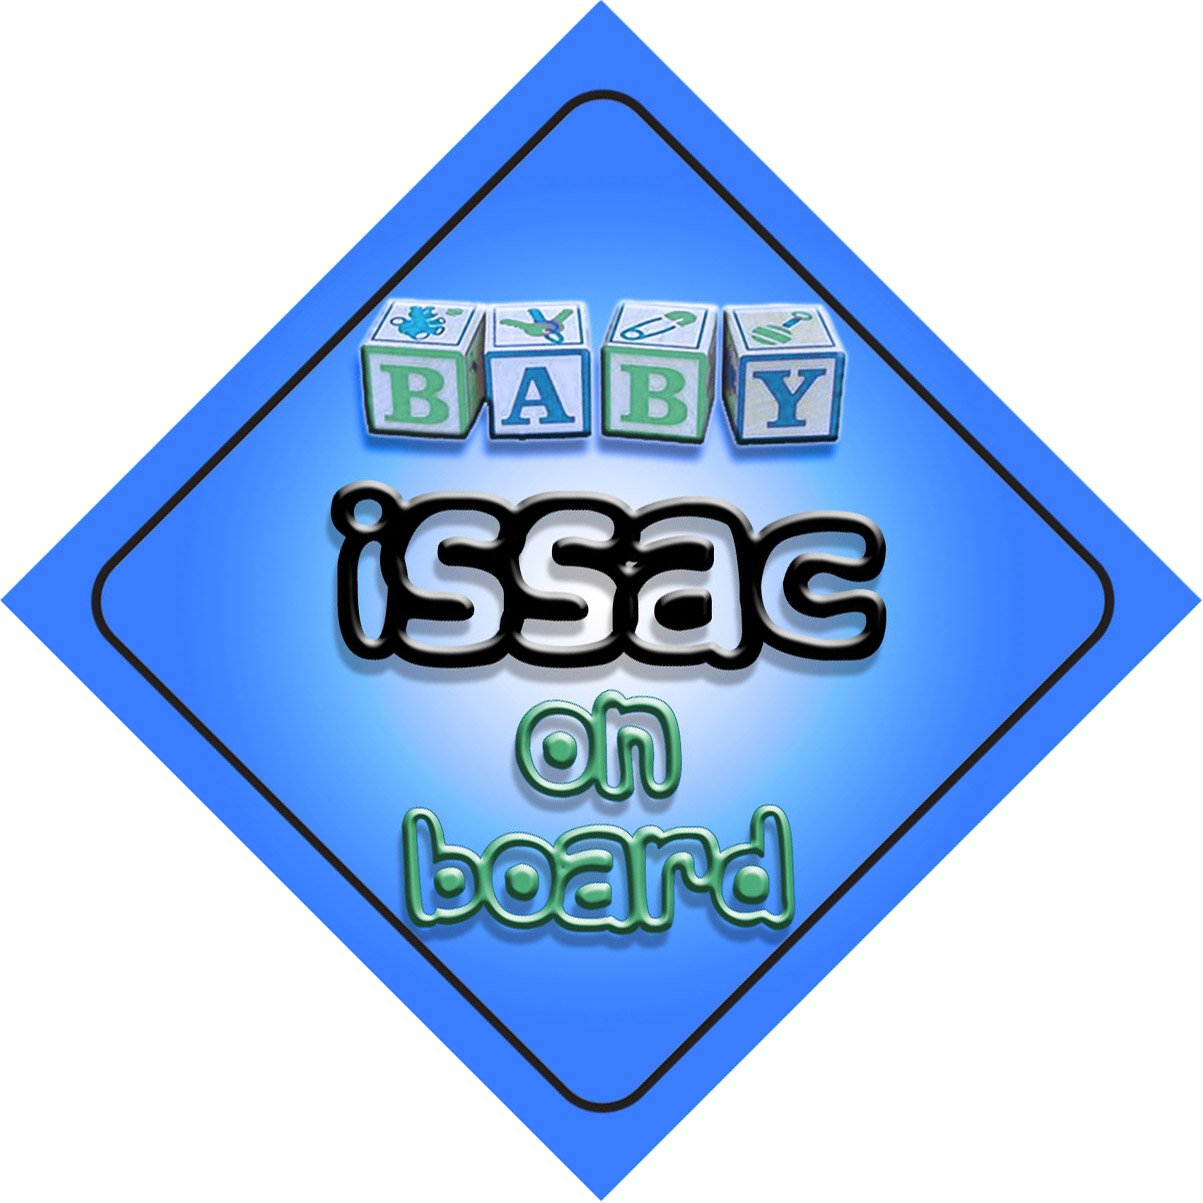 newborn baby Baby Boy Issac on board novelty car sign gift present for new child